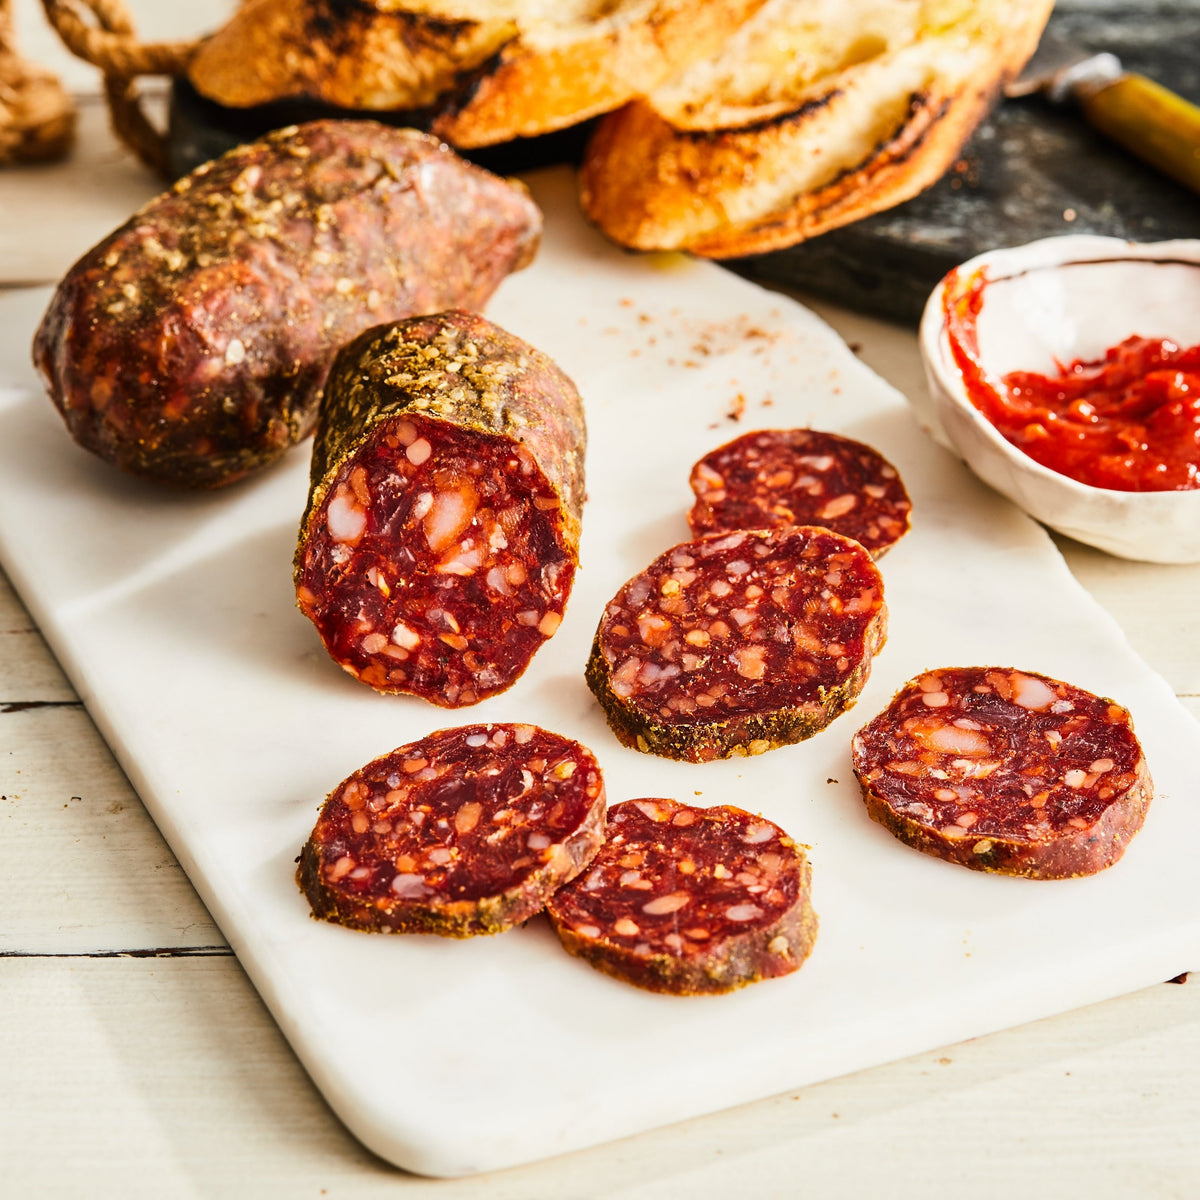 Image of Lamb Harissa Salami (no pork). 1 link, 3oz. a lamb salami with harissa (a spicy, aromatic chili paste), za'atar (a Middle Eastern blend of savory dried herbs), and preserved lemon